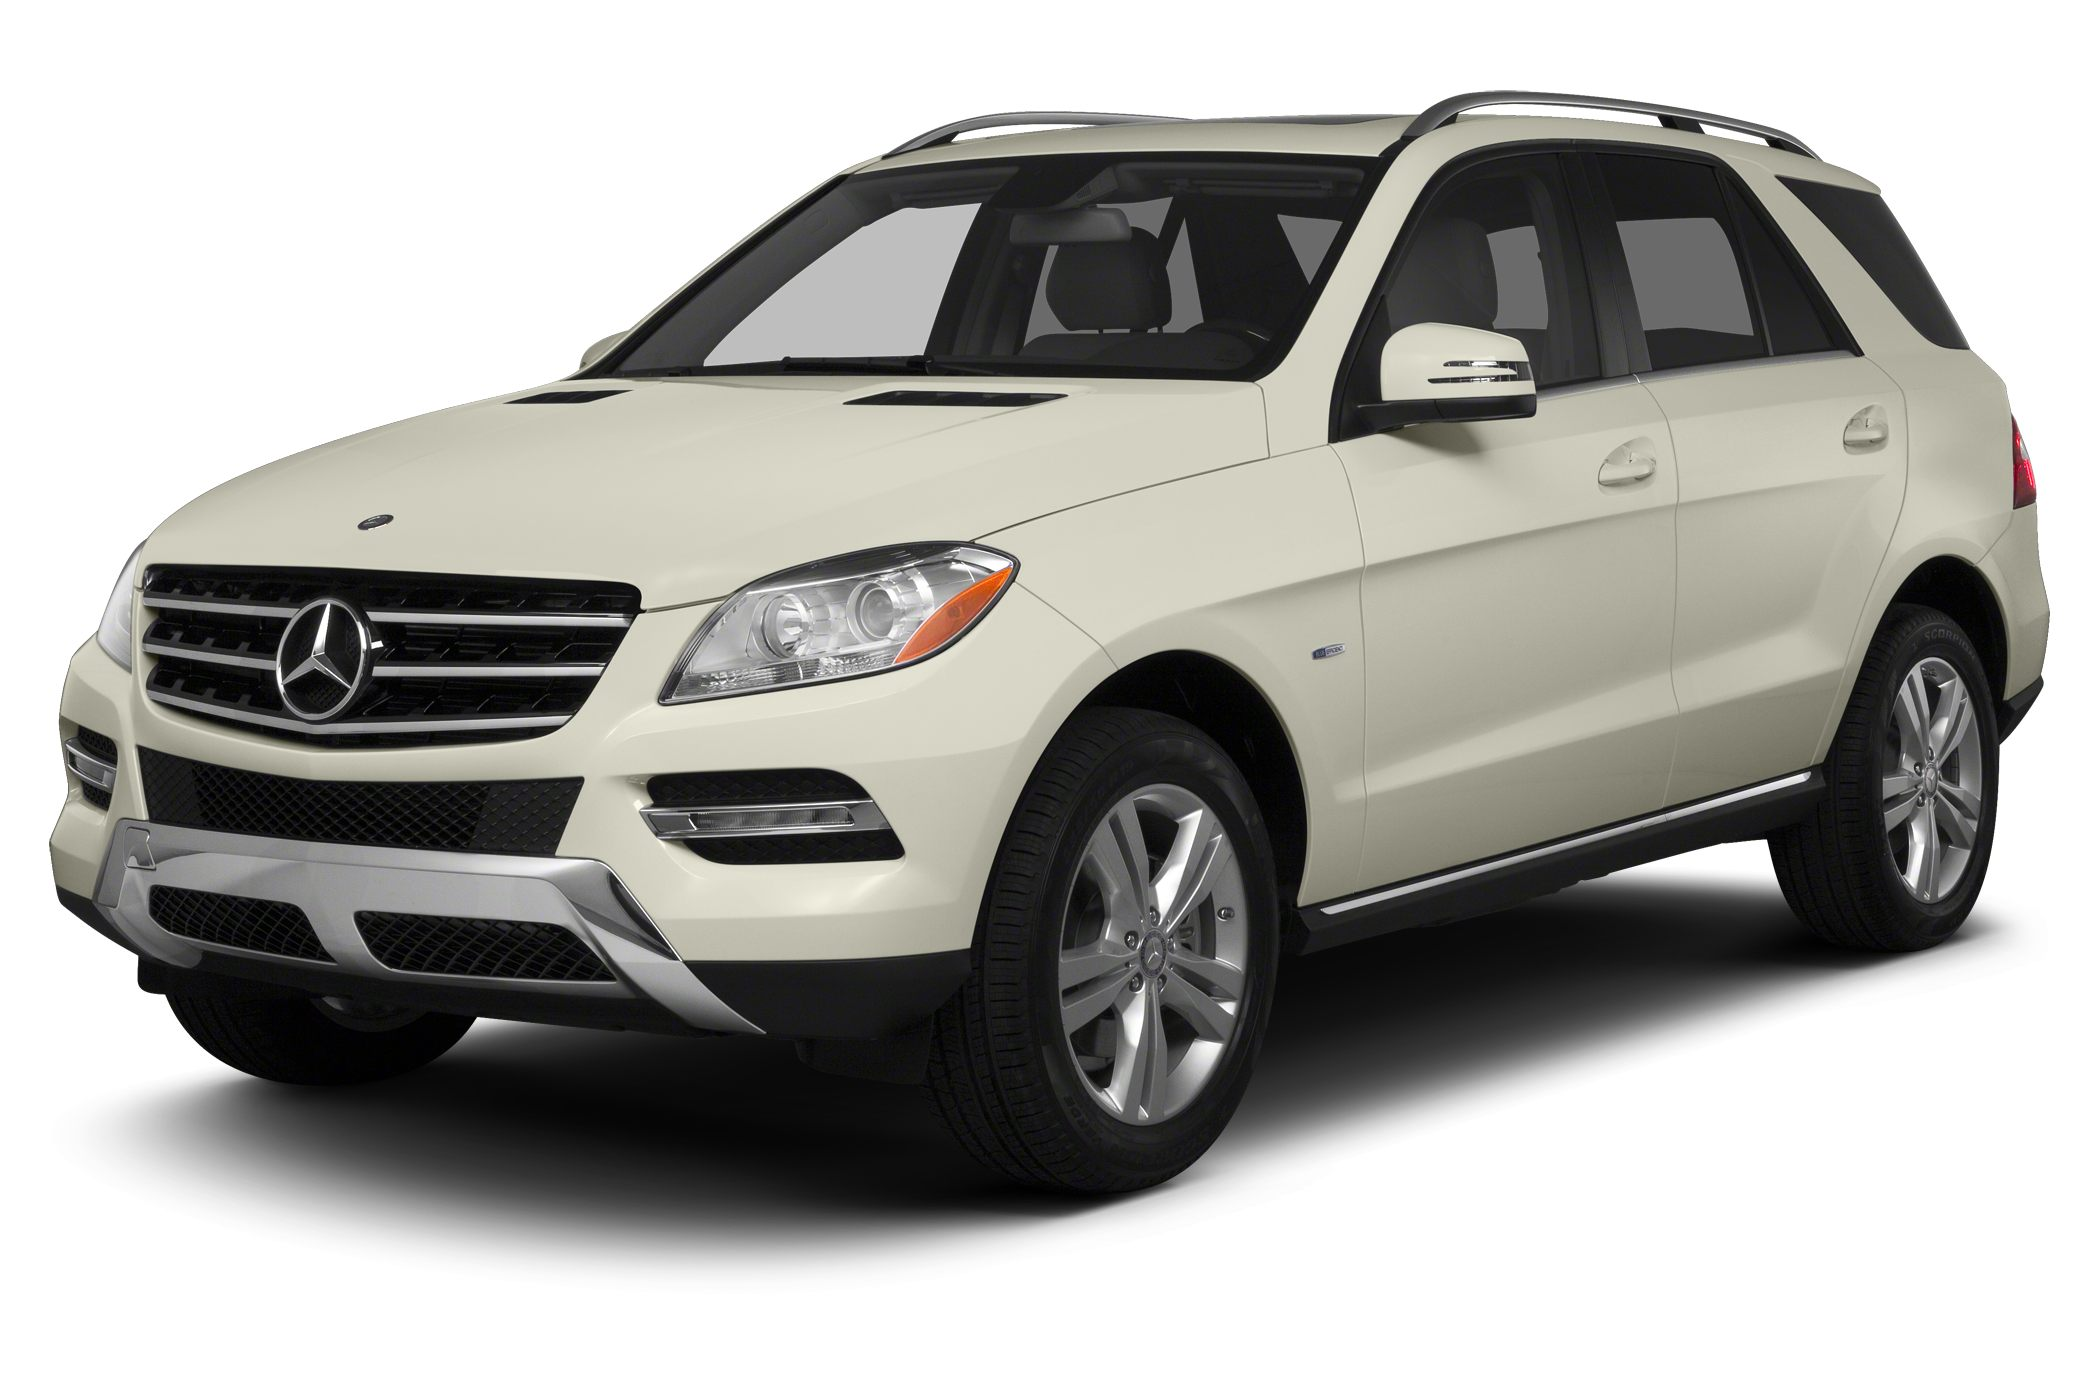 2013 Mercedes-Benz M-Class ML350 SUV for sale in Shreveport for $41,977 with 30,153 miles.